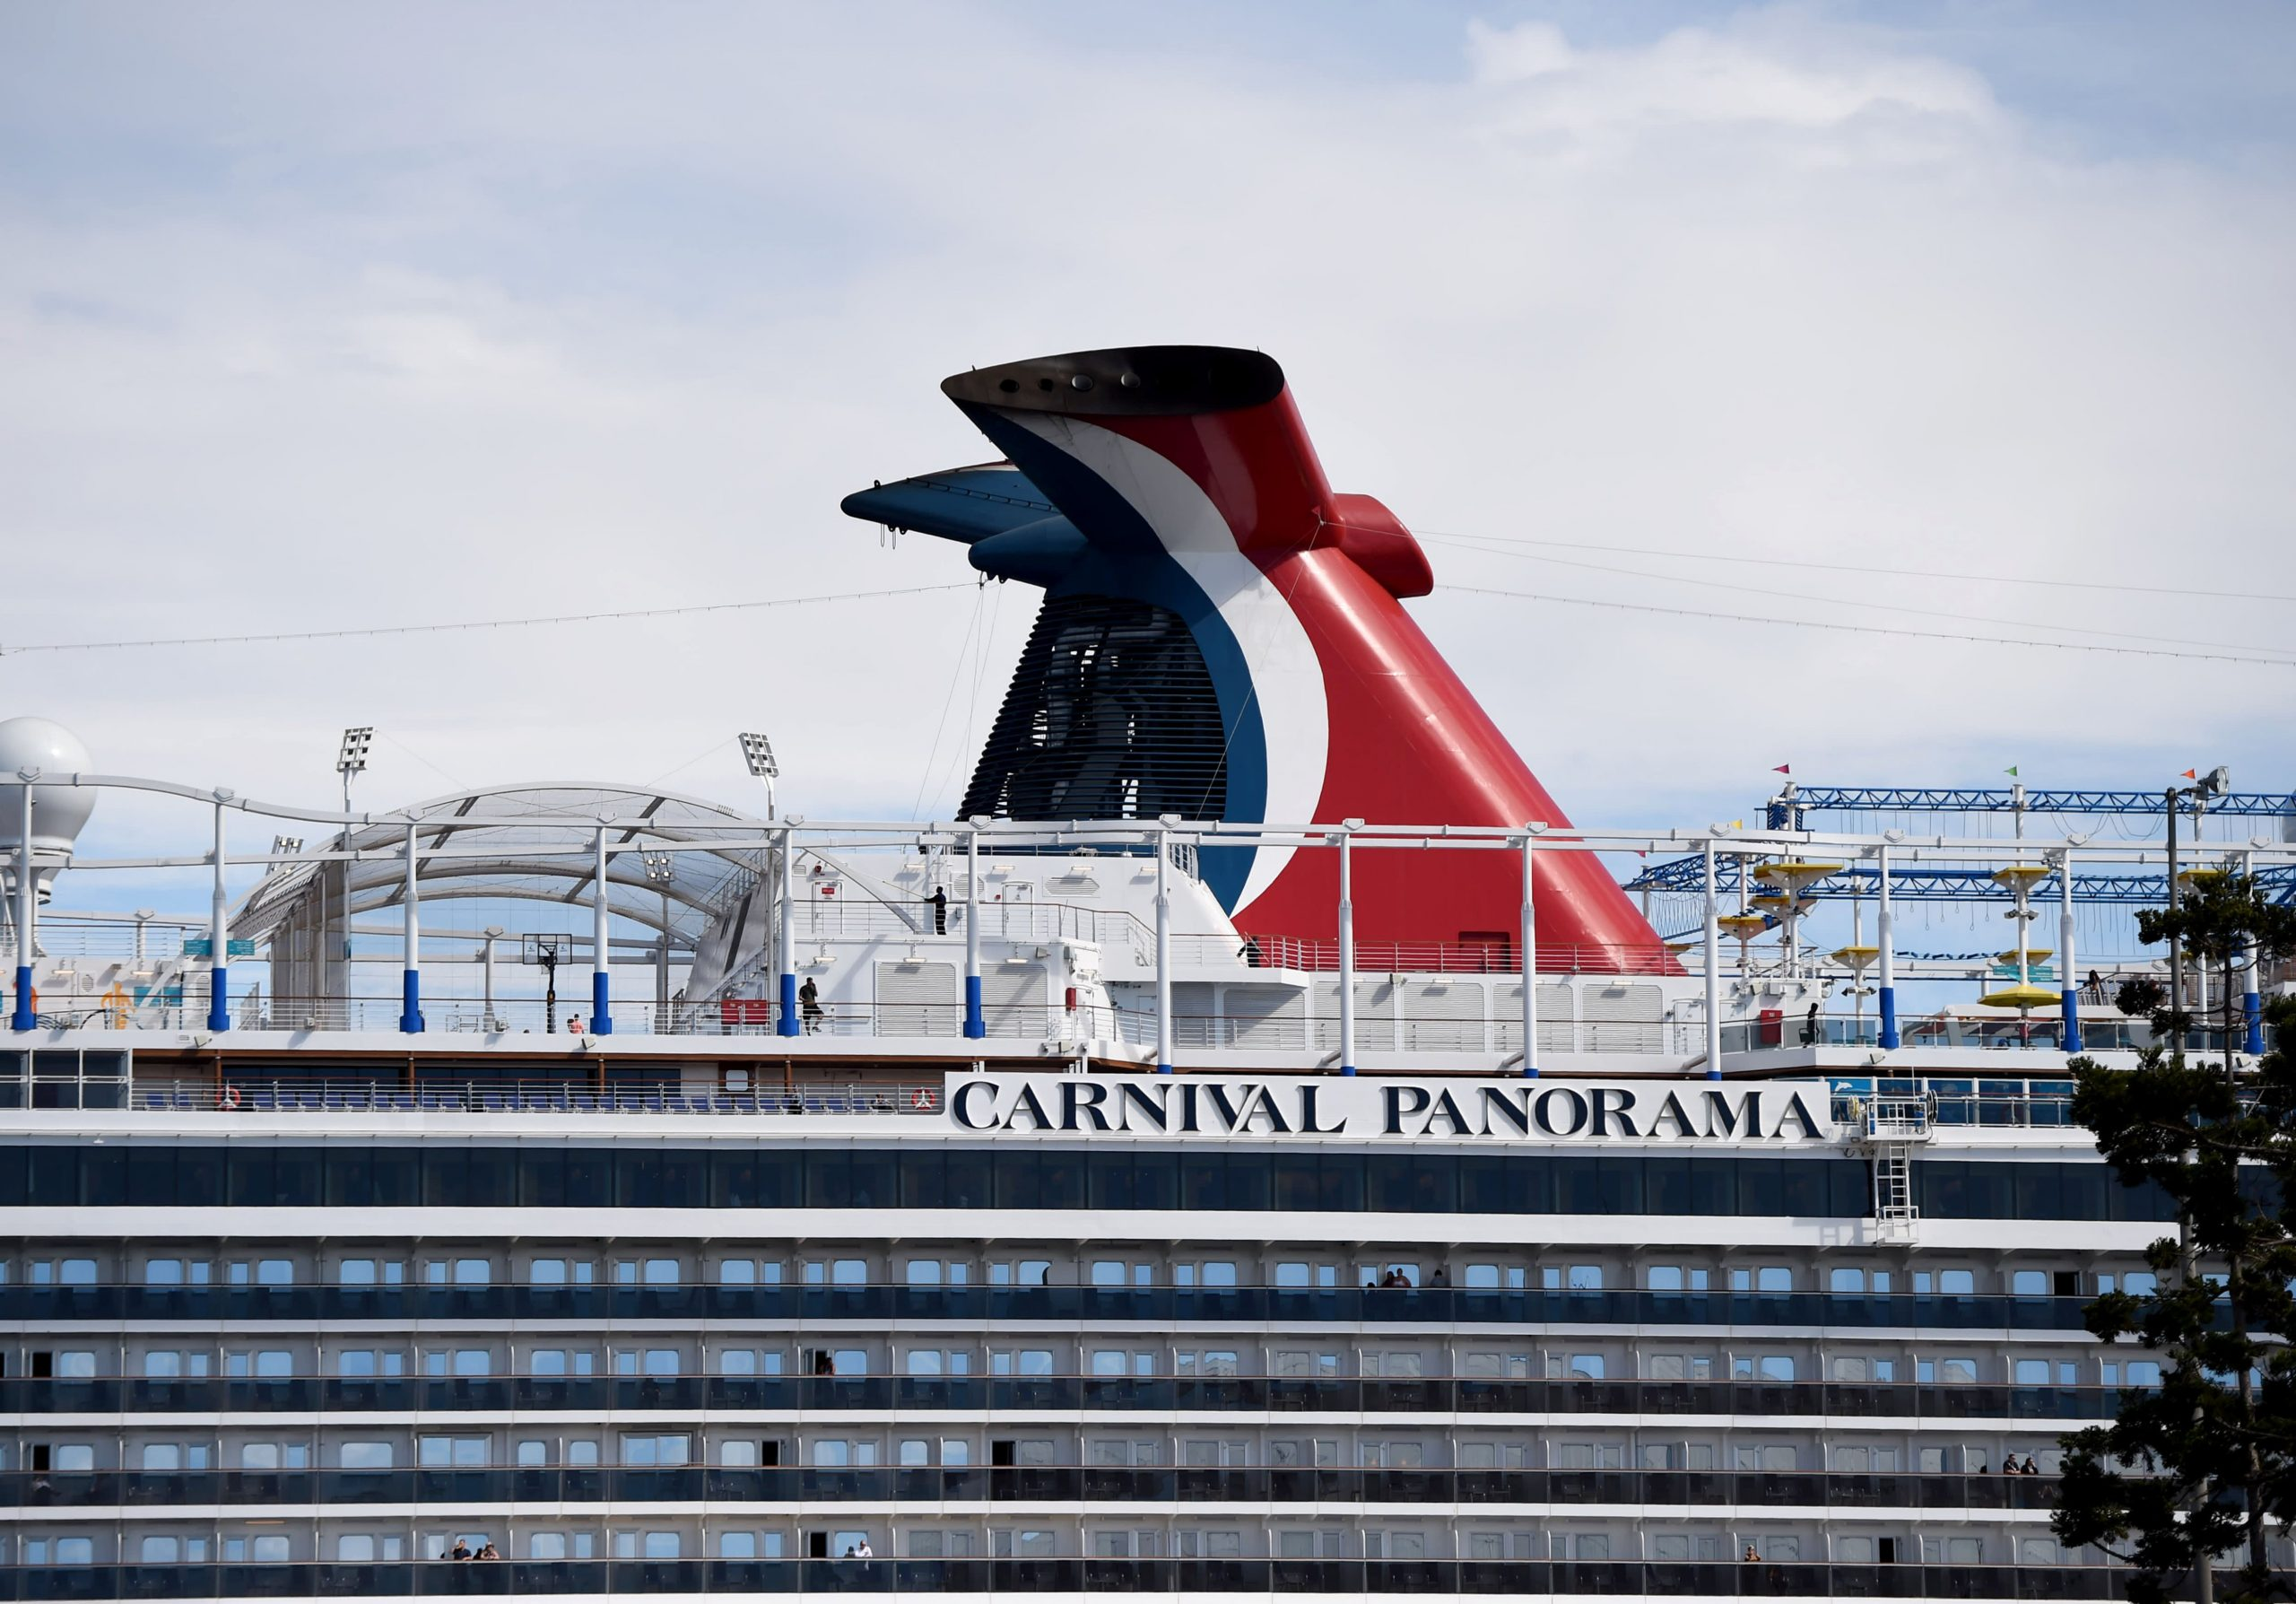 Carnival says bookings rise at record pace, watching US rules closely